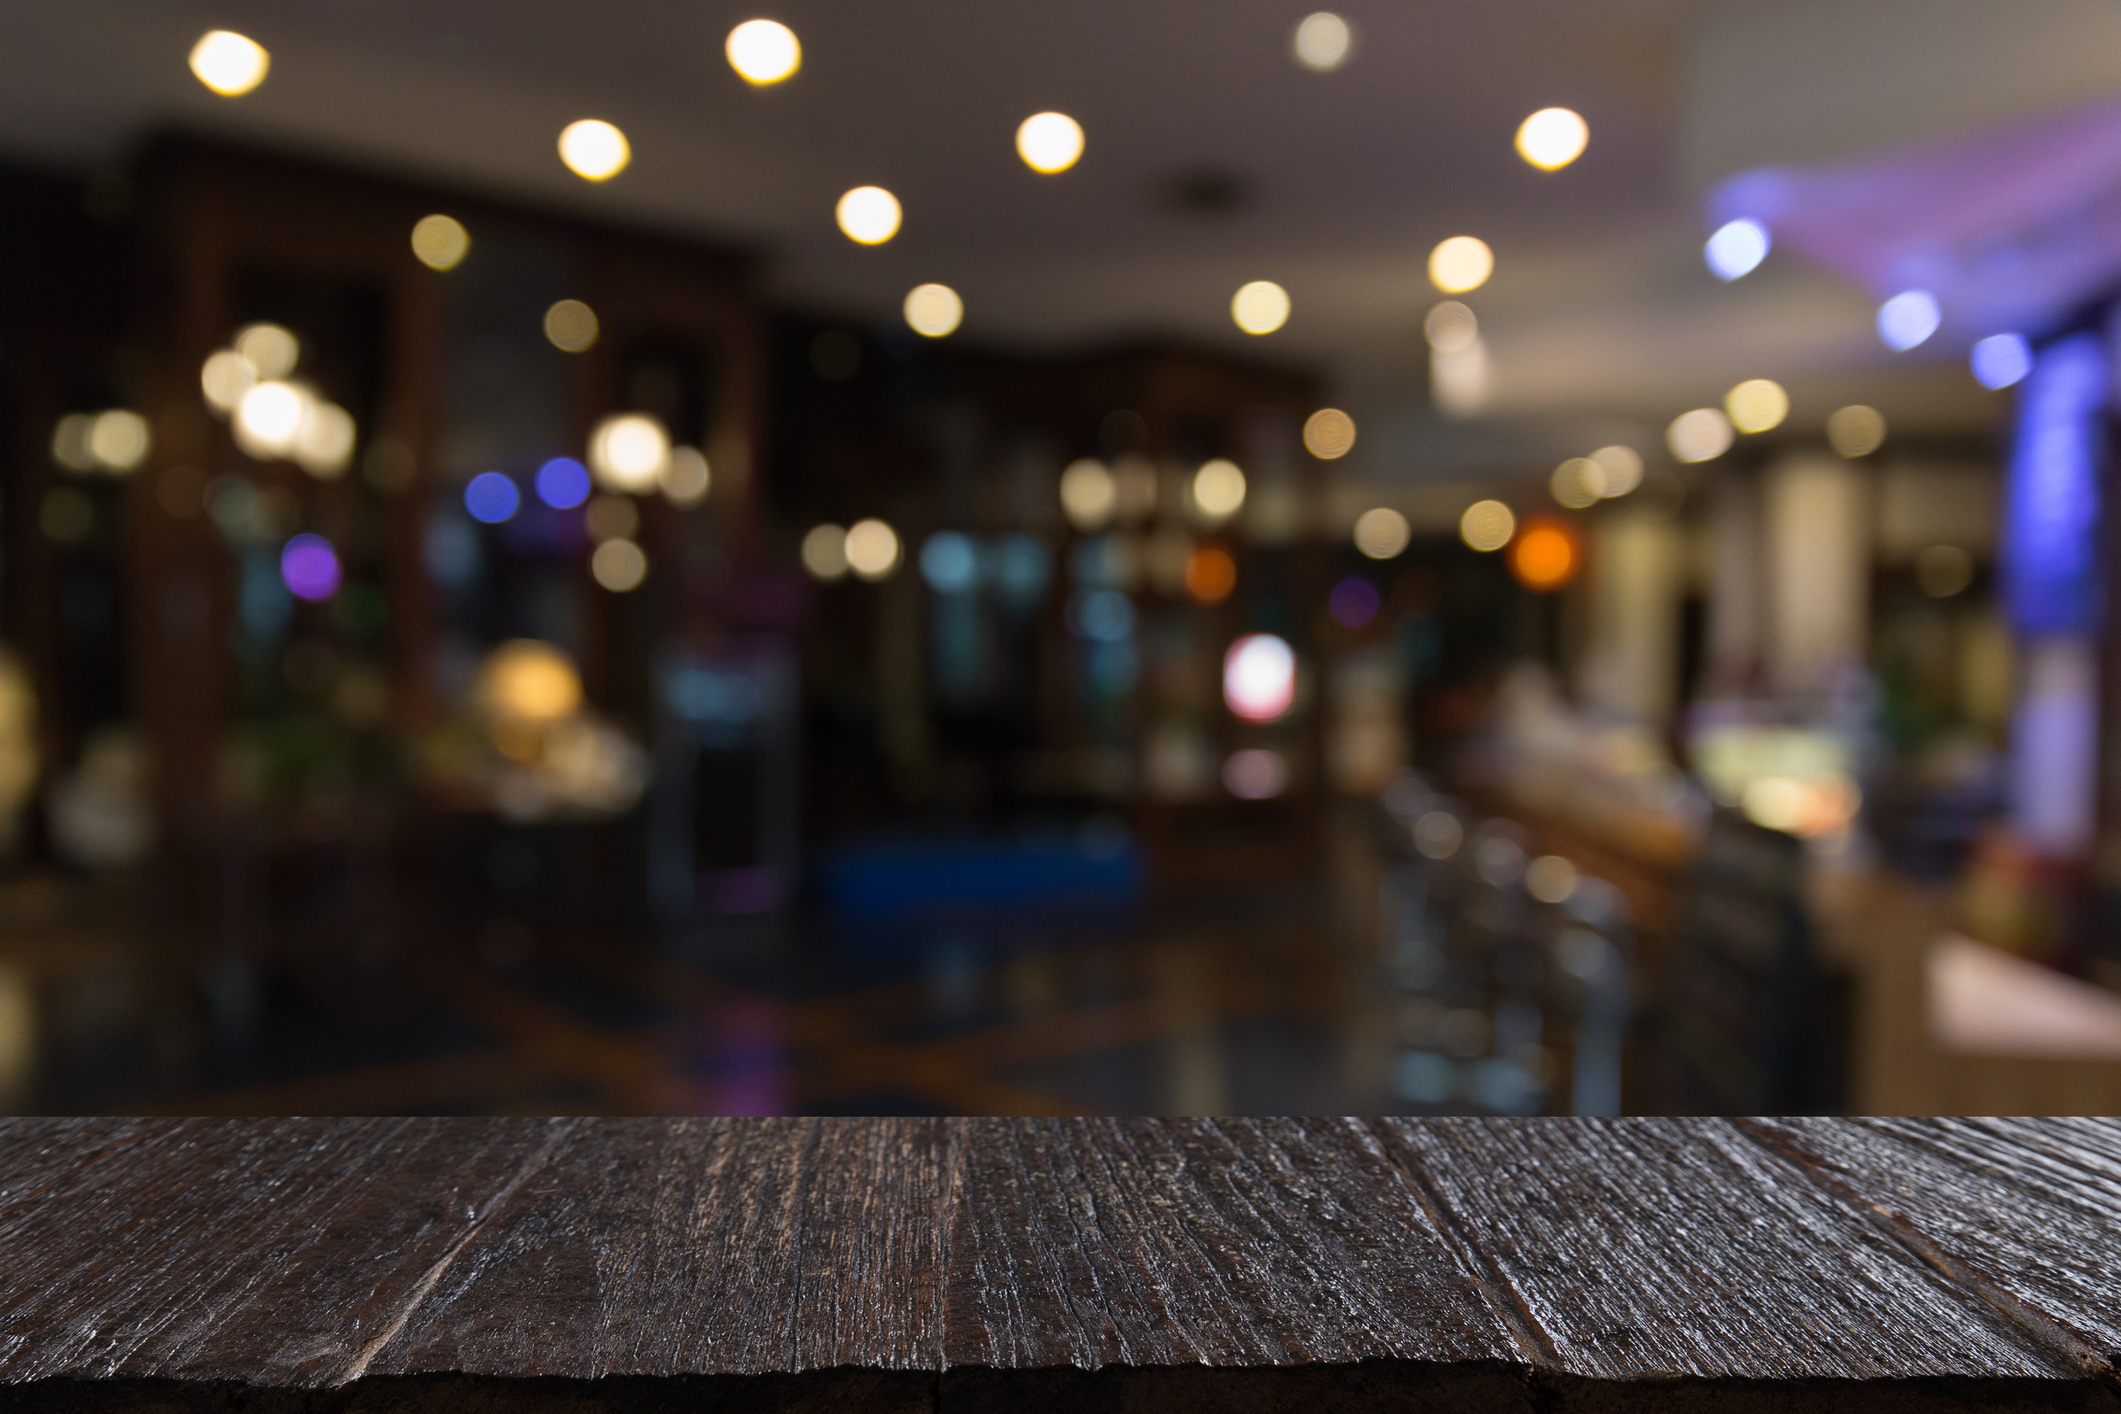 blur background of pub restaurant with wood table - PointOS